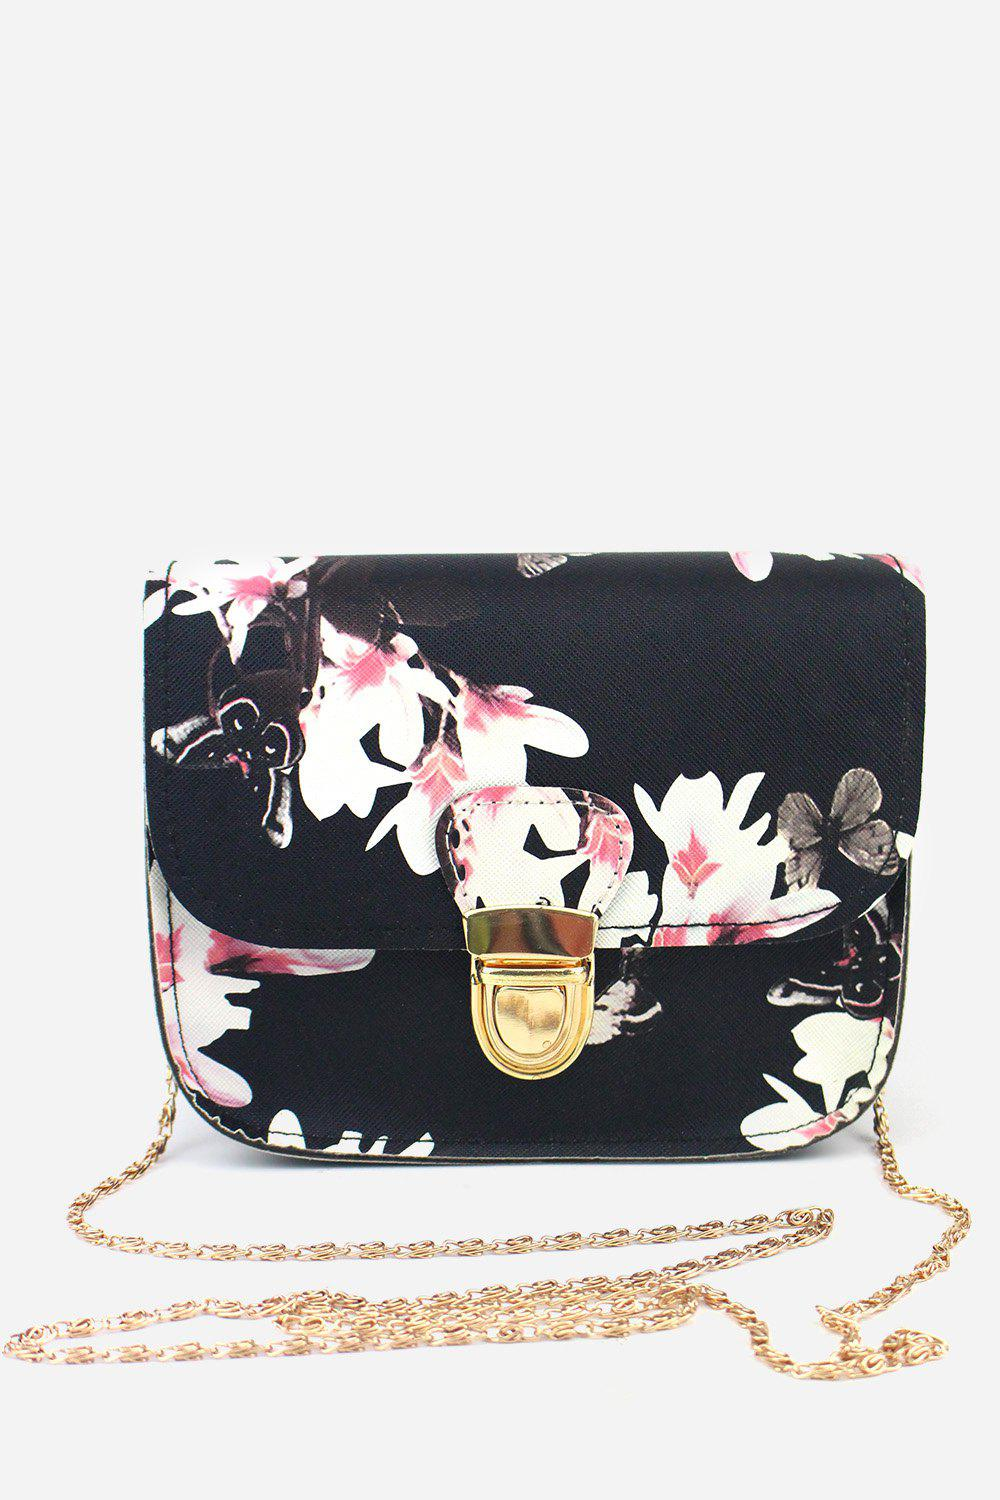 Discount Leisure Butterfly Flower Printed PU Chain Strap Shoulder Bag